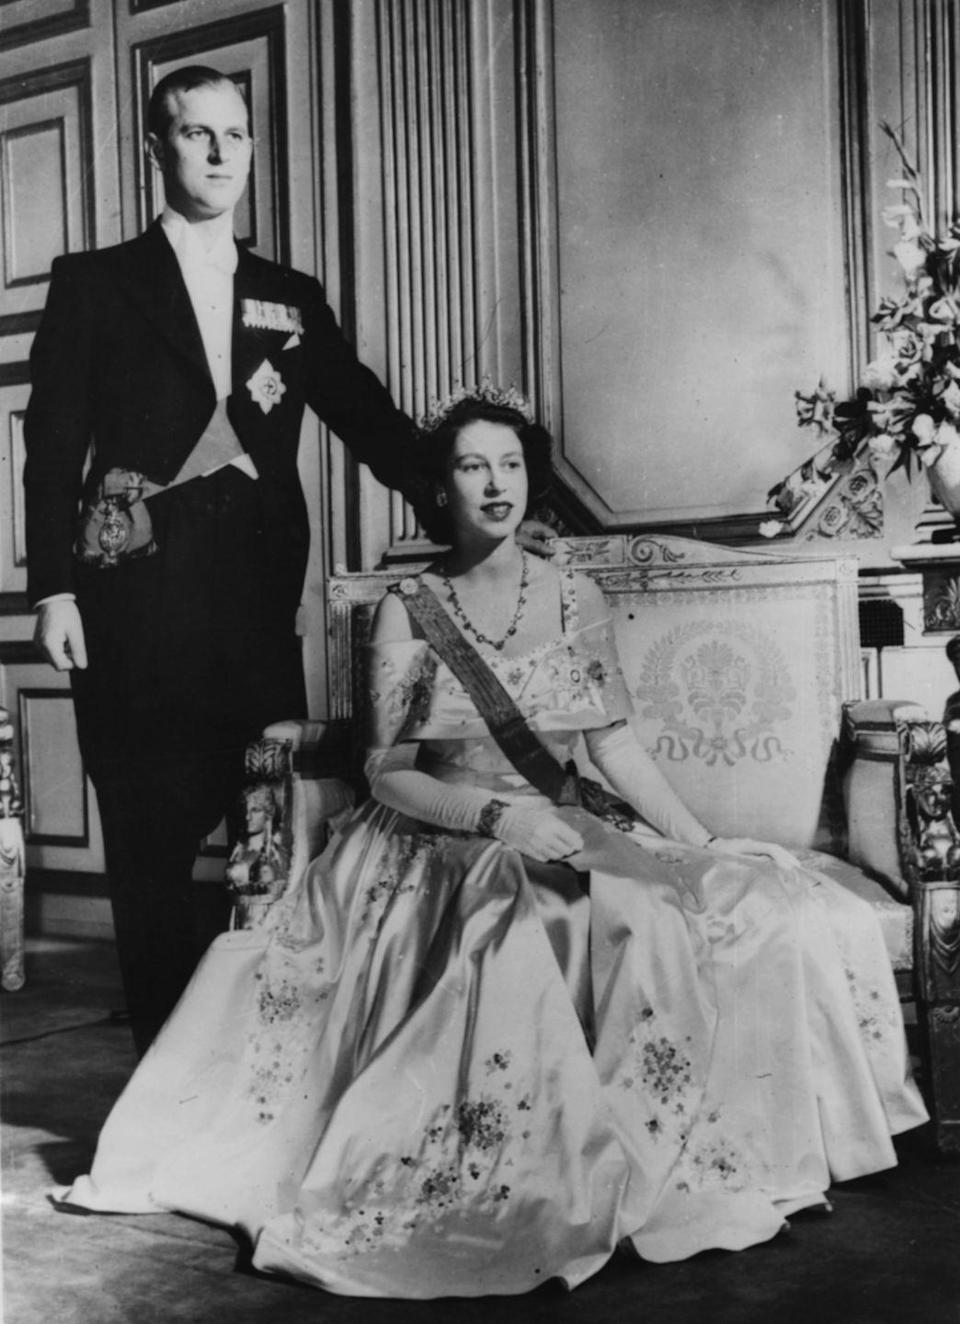 "<p>If you've ever watched <em>The Crown</em>, then you know that Philip has long struggled with his wife being the Queen and effectively having a lot more power than him. While the Netflix show is only somewhat based in reality and isn't always completely factual, that part of the story is rooted in truth. </p><p>When King George died and Elizabeth became Queen, Philip had to give up the naval career he loved to help her with her royal duties. They moved from Clarence House, the home he loved, to Buckingham Palace, something he wasn't thrilled about. <em>The Crown</em> depicts Philip as an alpha male frustrated by his roll and title, and real <a href=""https://www.vanityfair.com/style/society/2012/01/queen-elizabeth-201201"" rel=""nofollow noopener"" target=""_blank"" data-ylk=""slk:reports"" class=""link rapid-noclick-resp"">reports</a> seem to back that up. </p>"